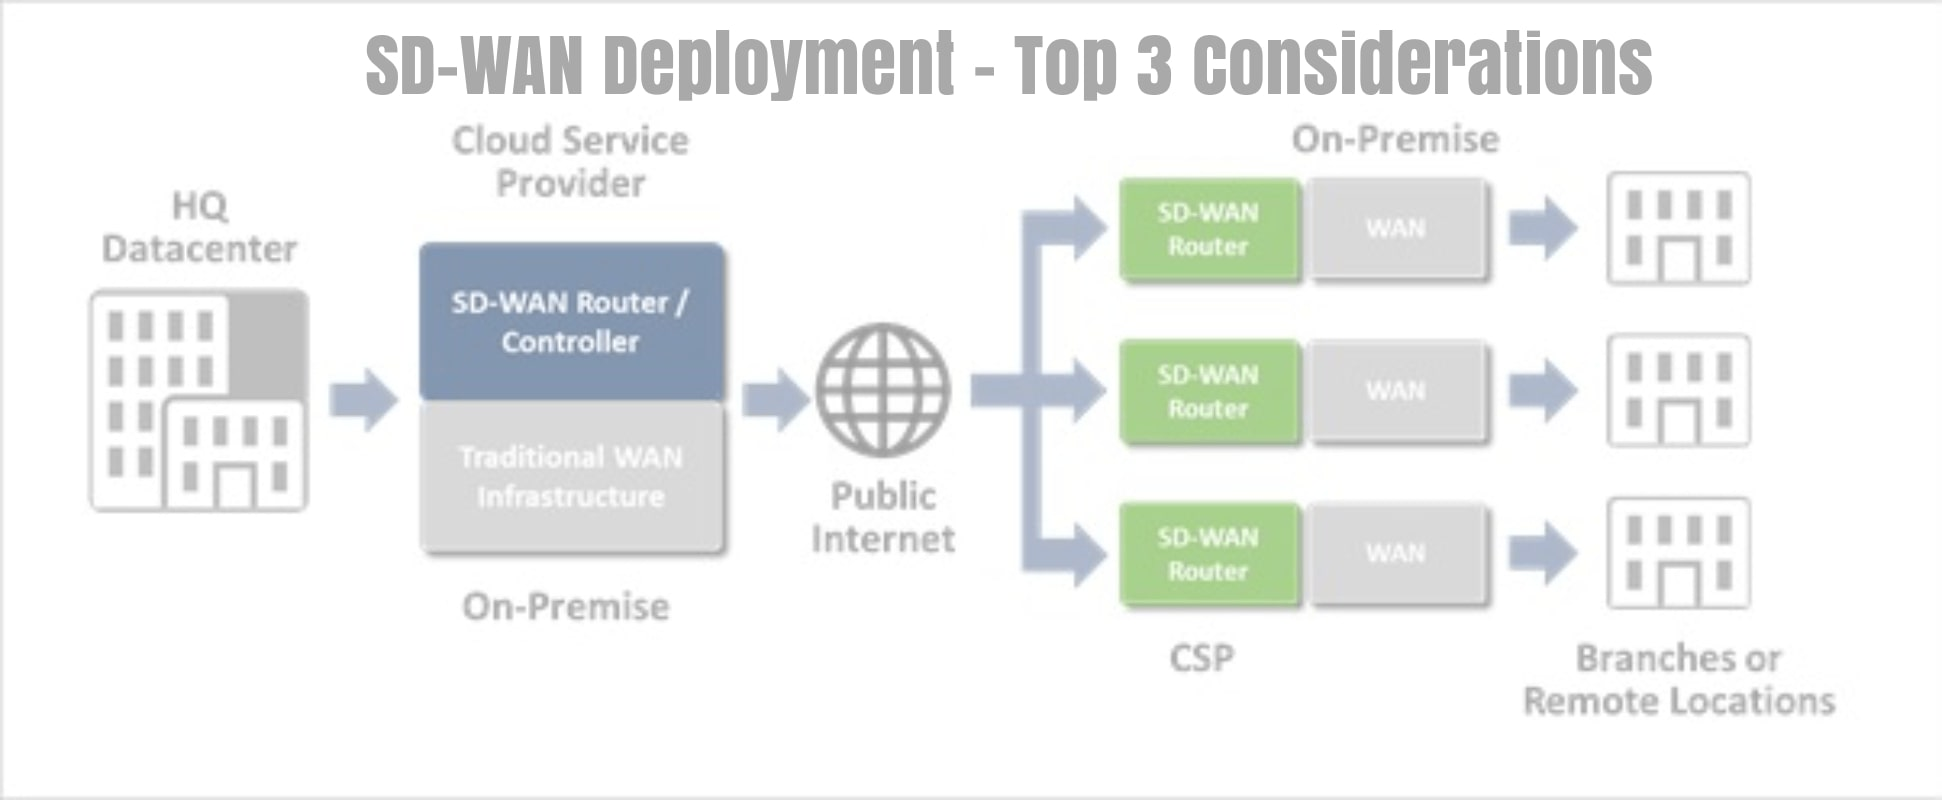 SD-WAN Deployment – Top 3 Considerations in 2019